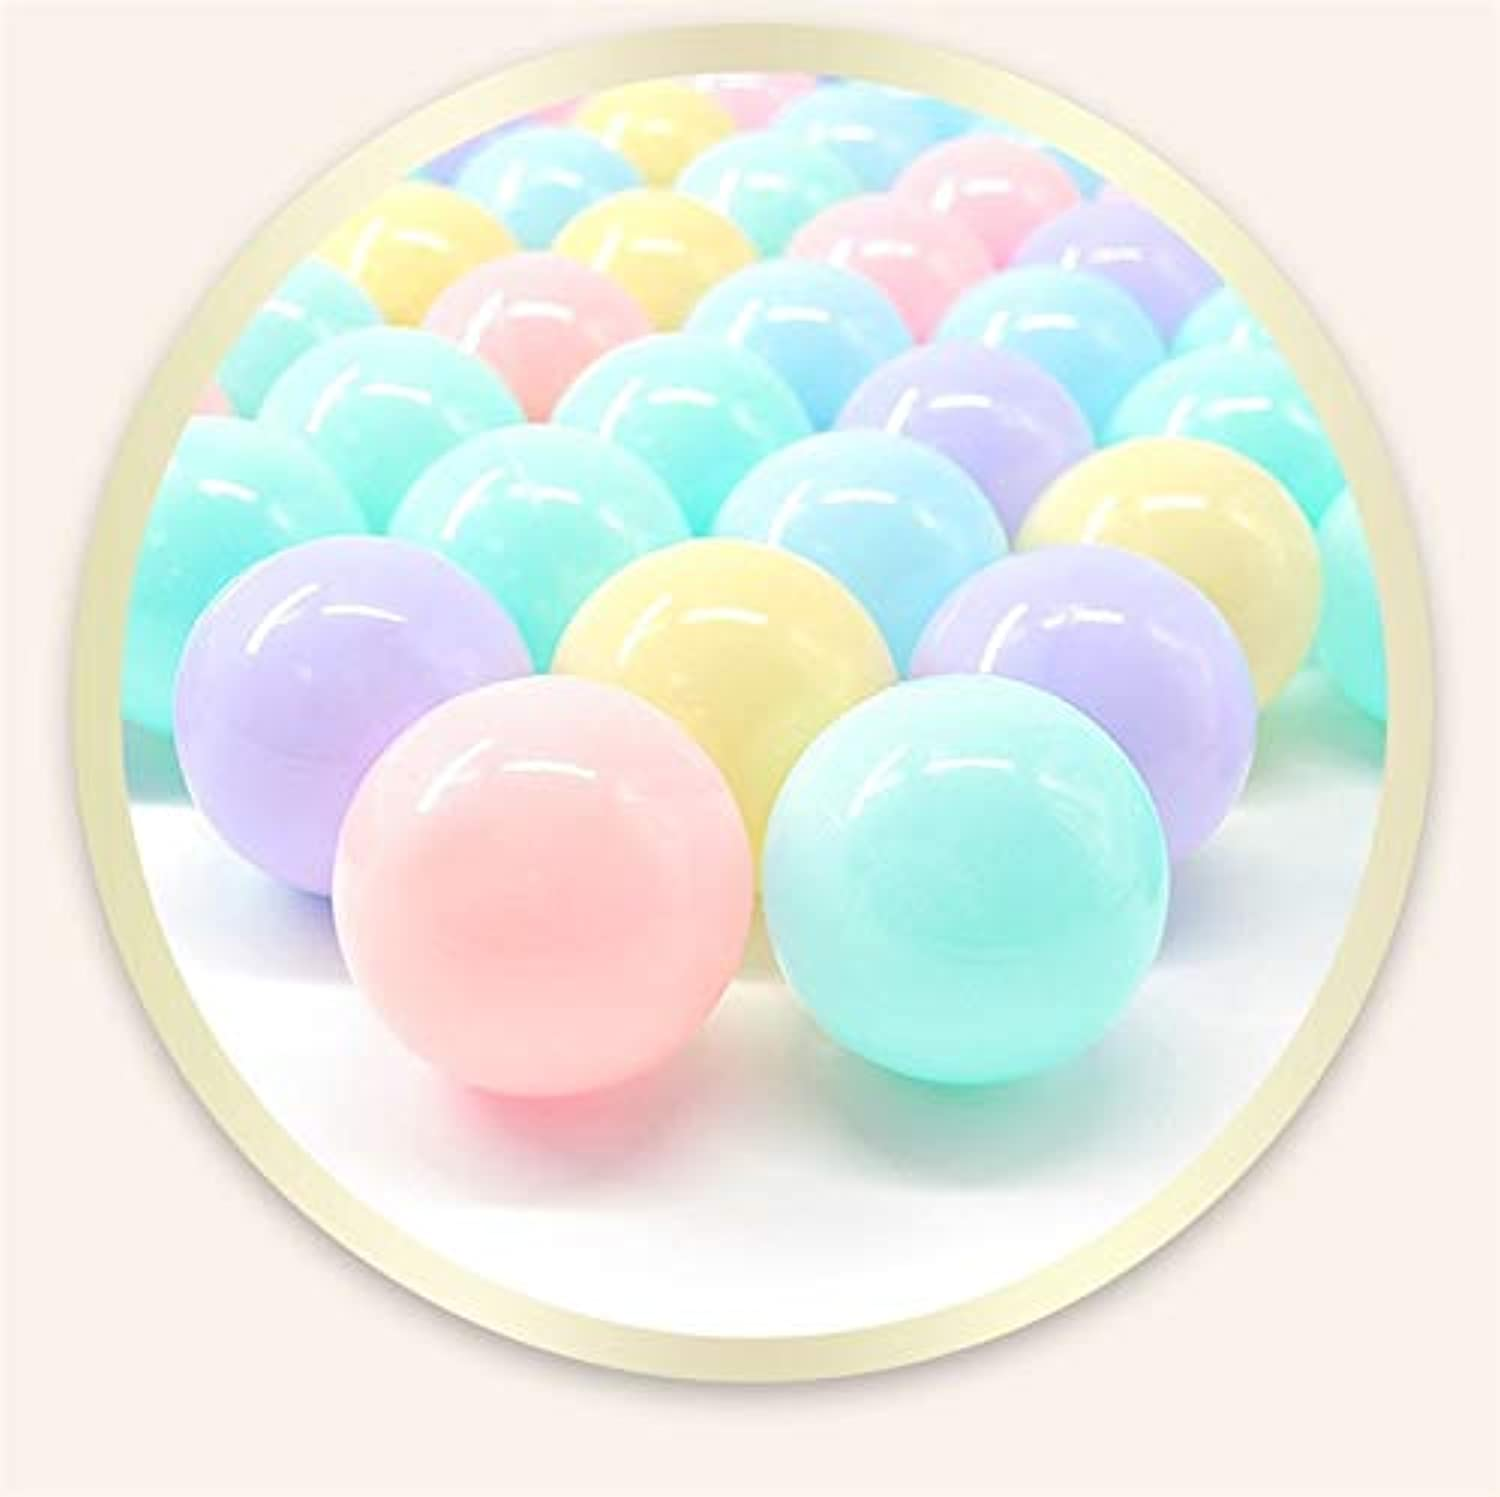 GonPi Toy Tends Plastic Ocean Ball Pit Pool Kids Game Play Ball Pits Outdoor Fun Sports  ldren Swim Pits Ball for Pool Toys